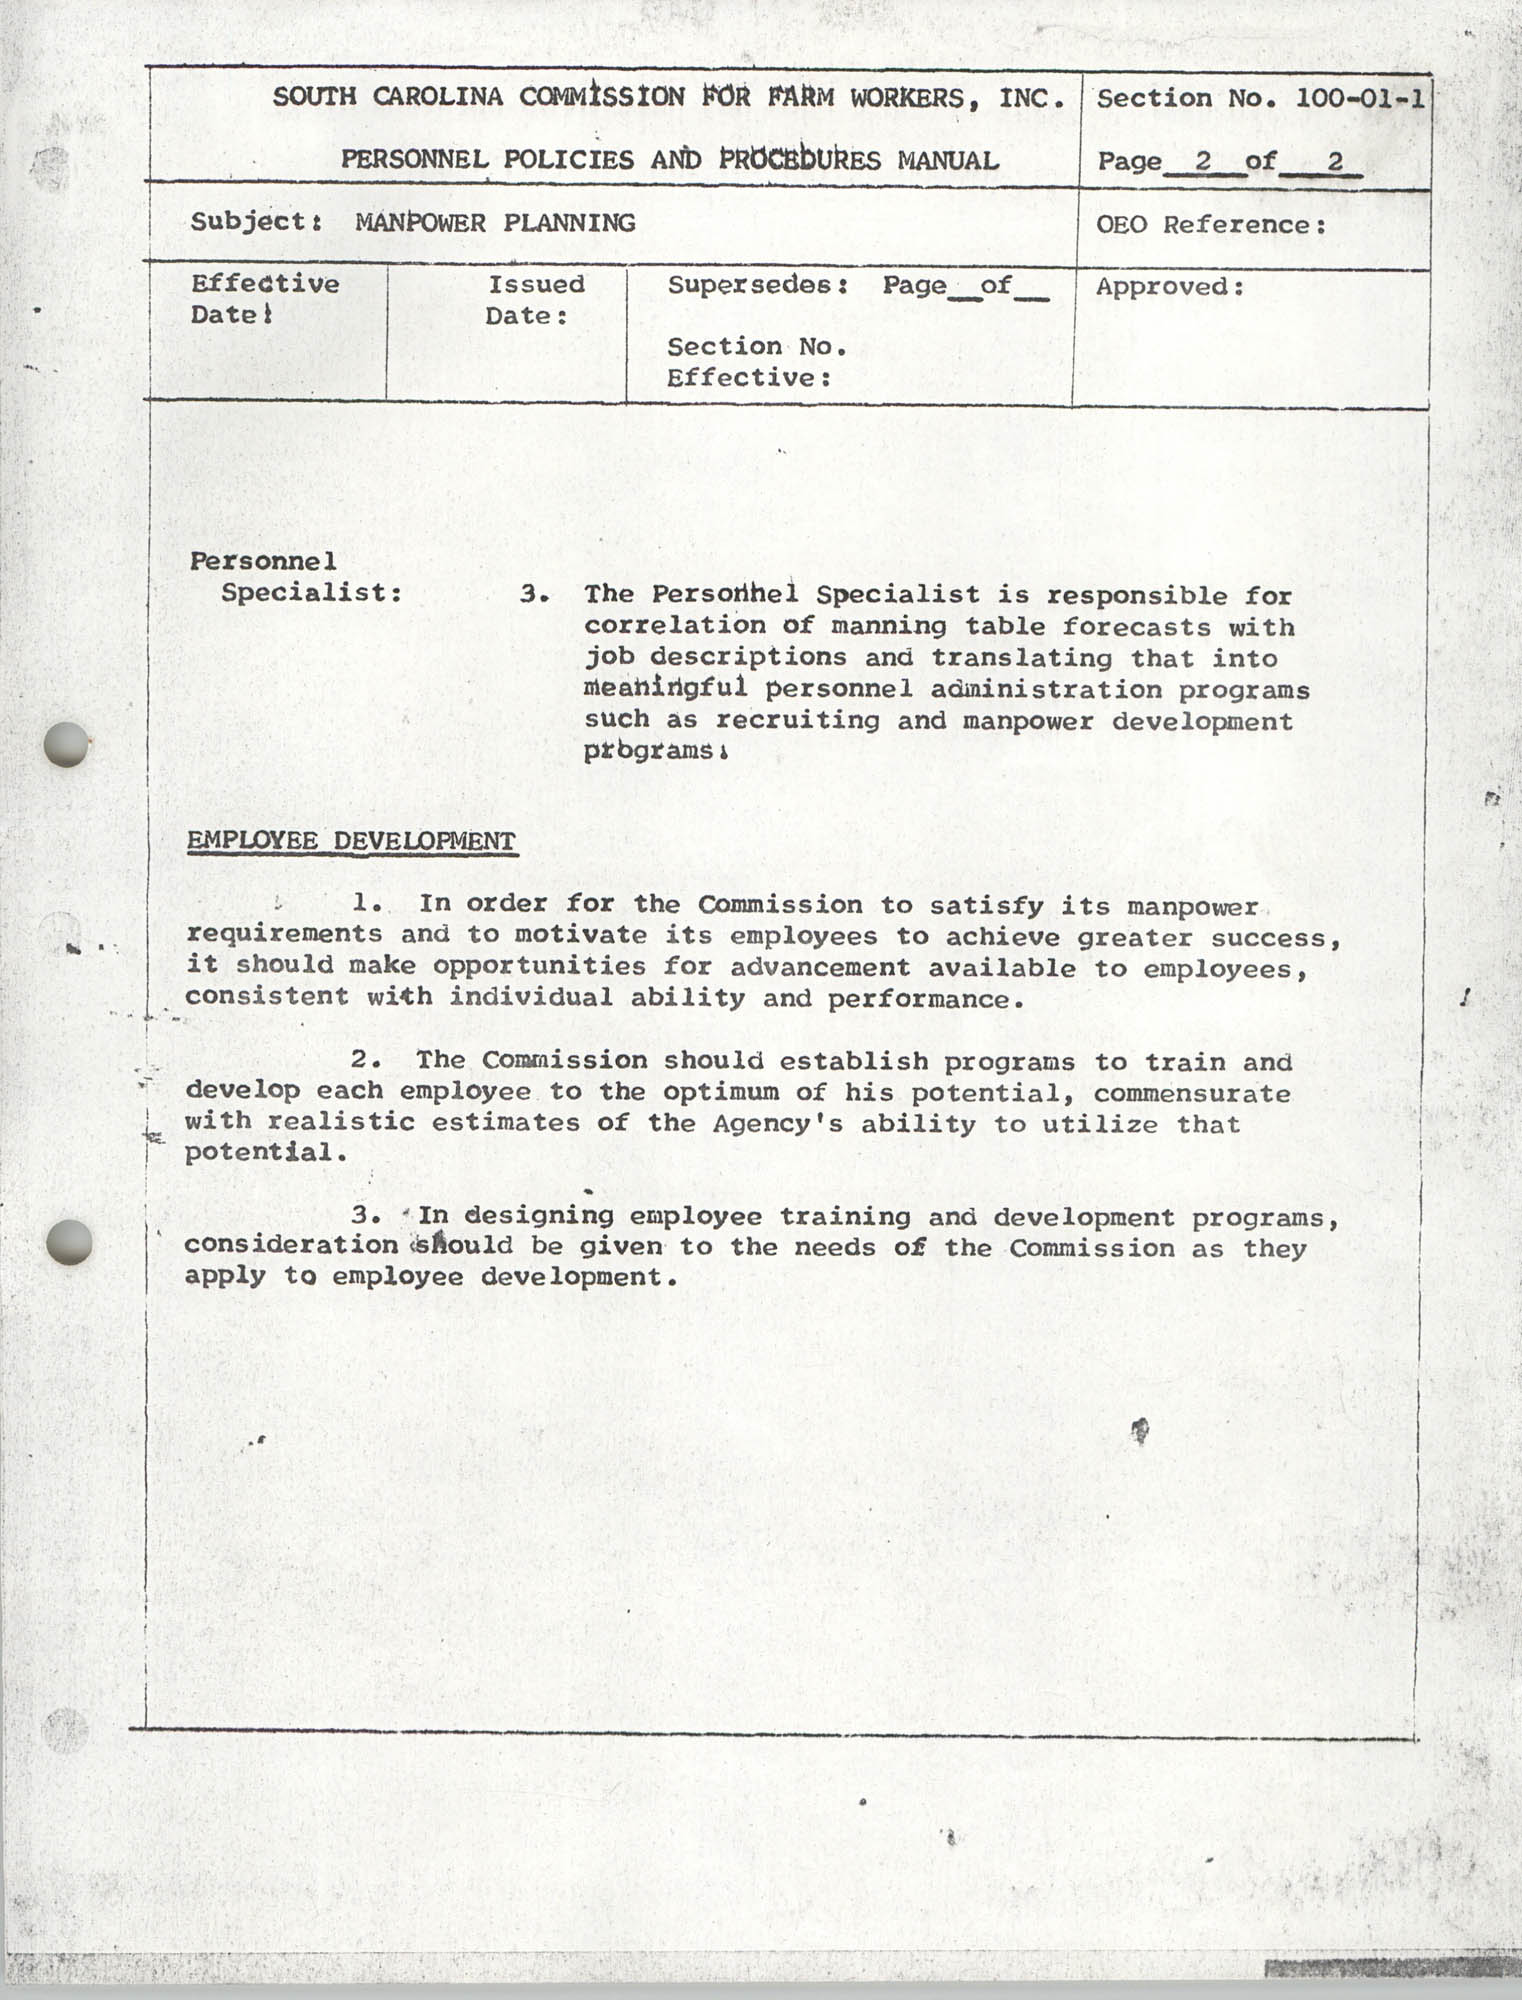 Personnel Policies and Procedures Manual, Section No. 100-01-1, Page 2